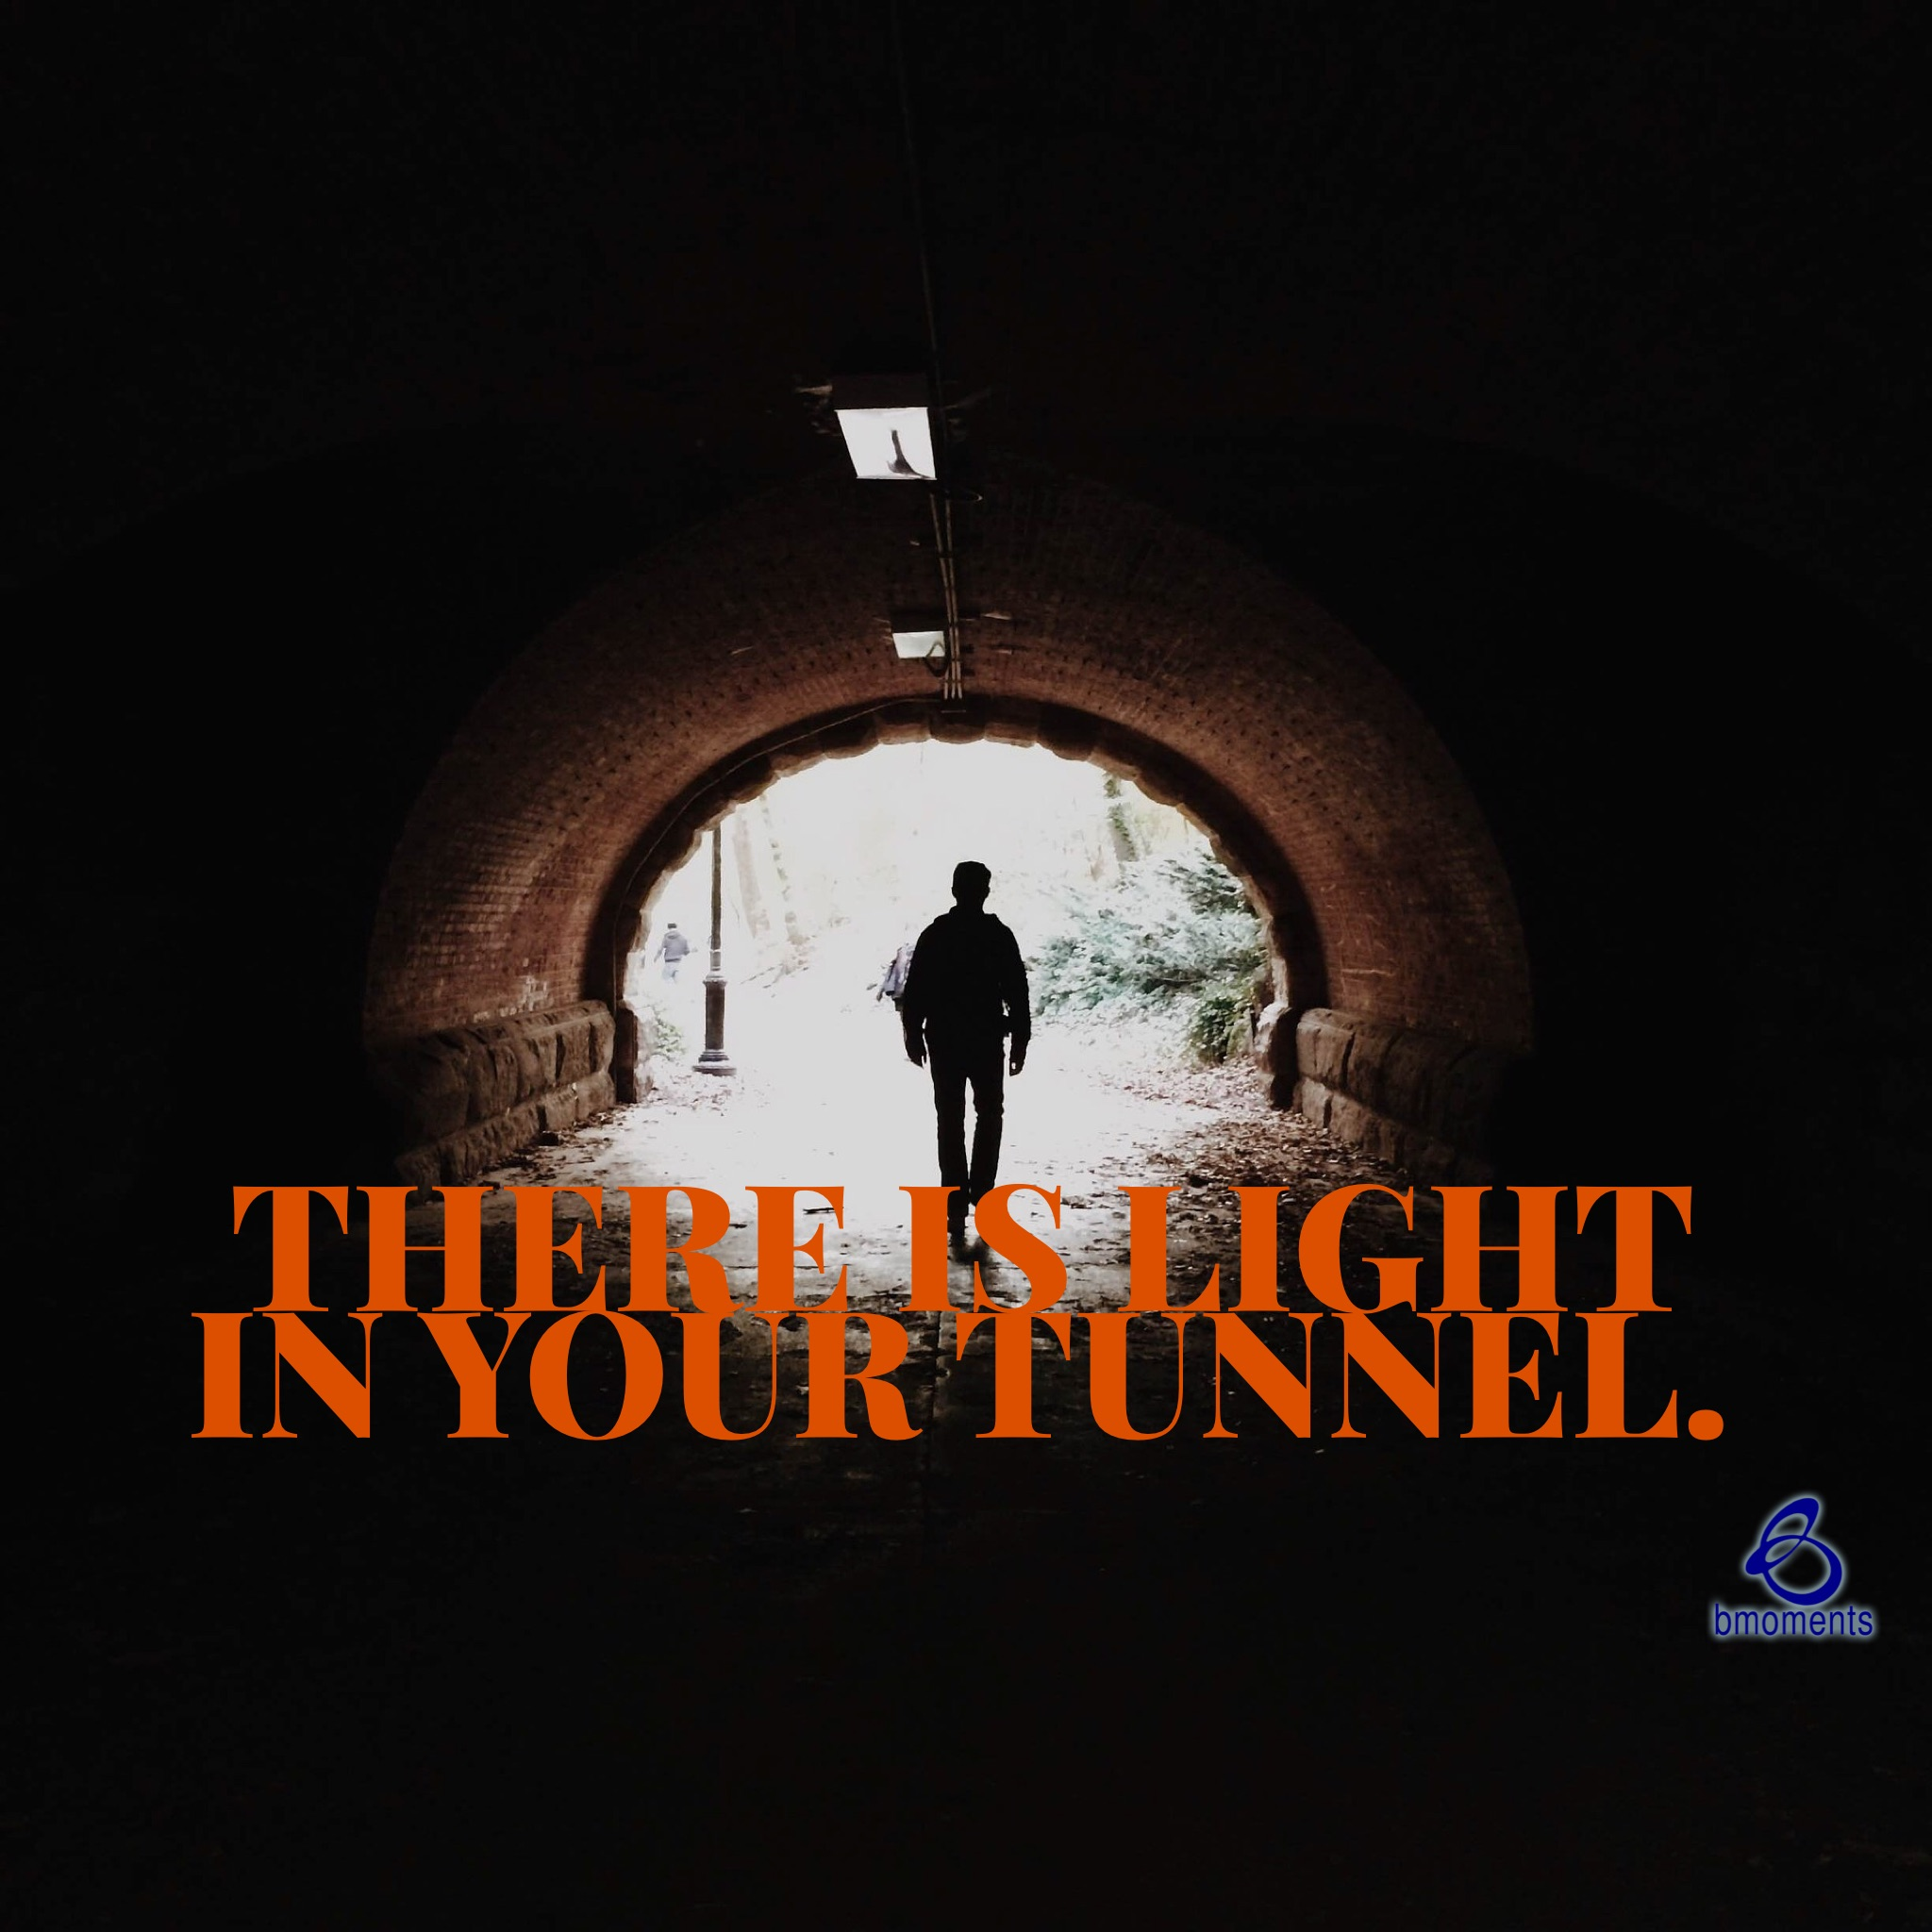 There's Light in Your Tunnel